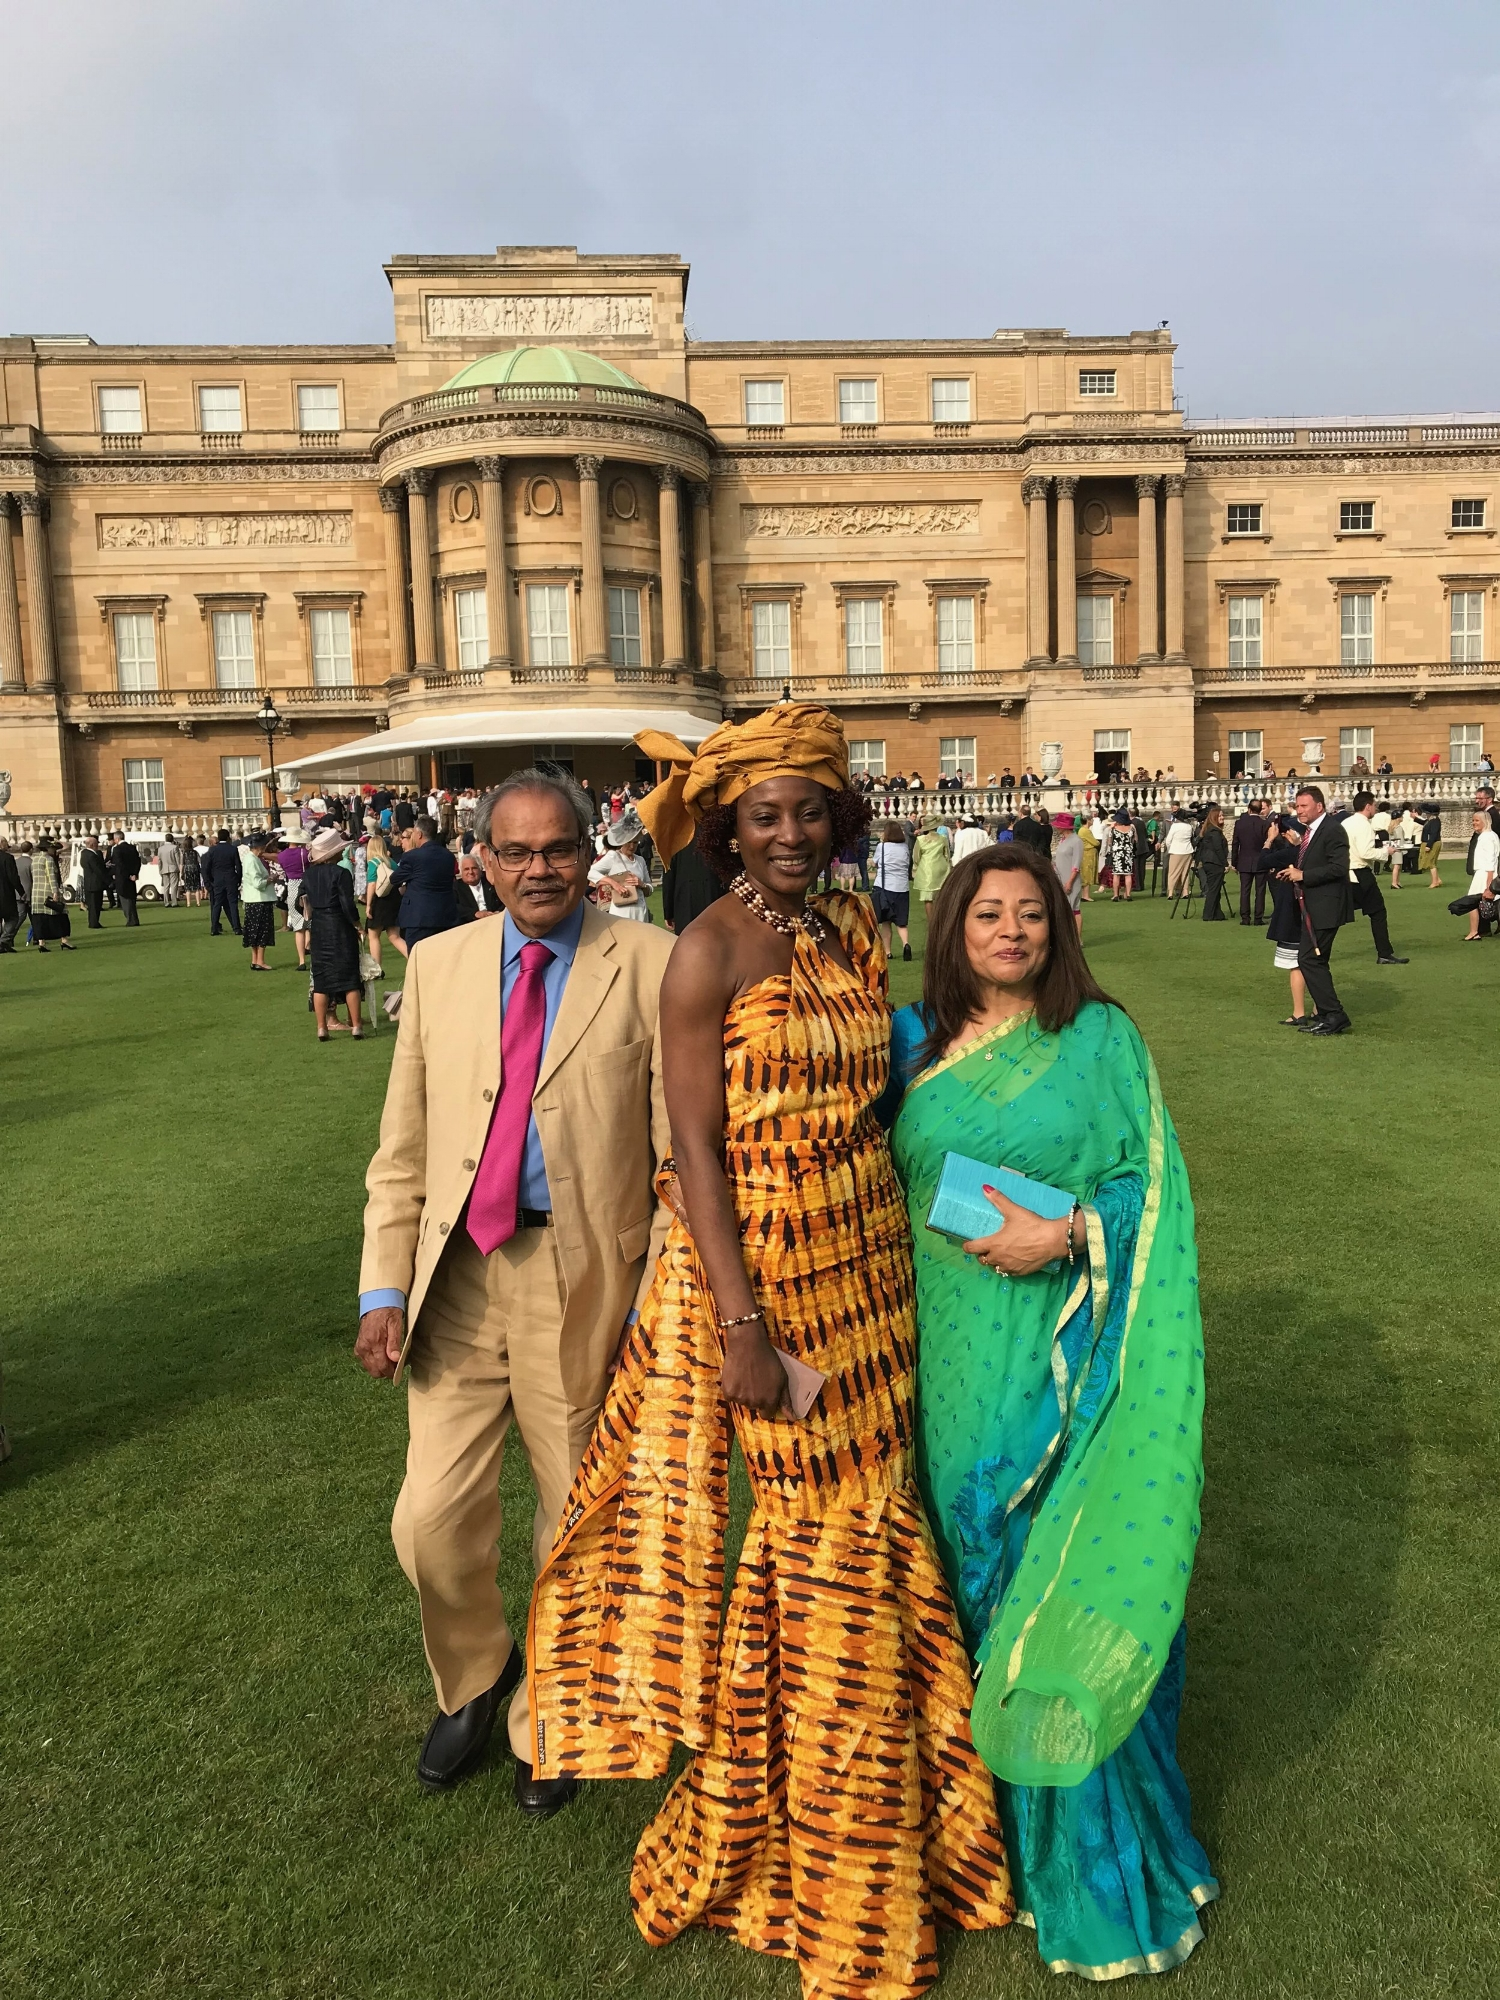 National Dress at The Queen's Garden Party